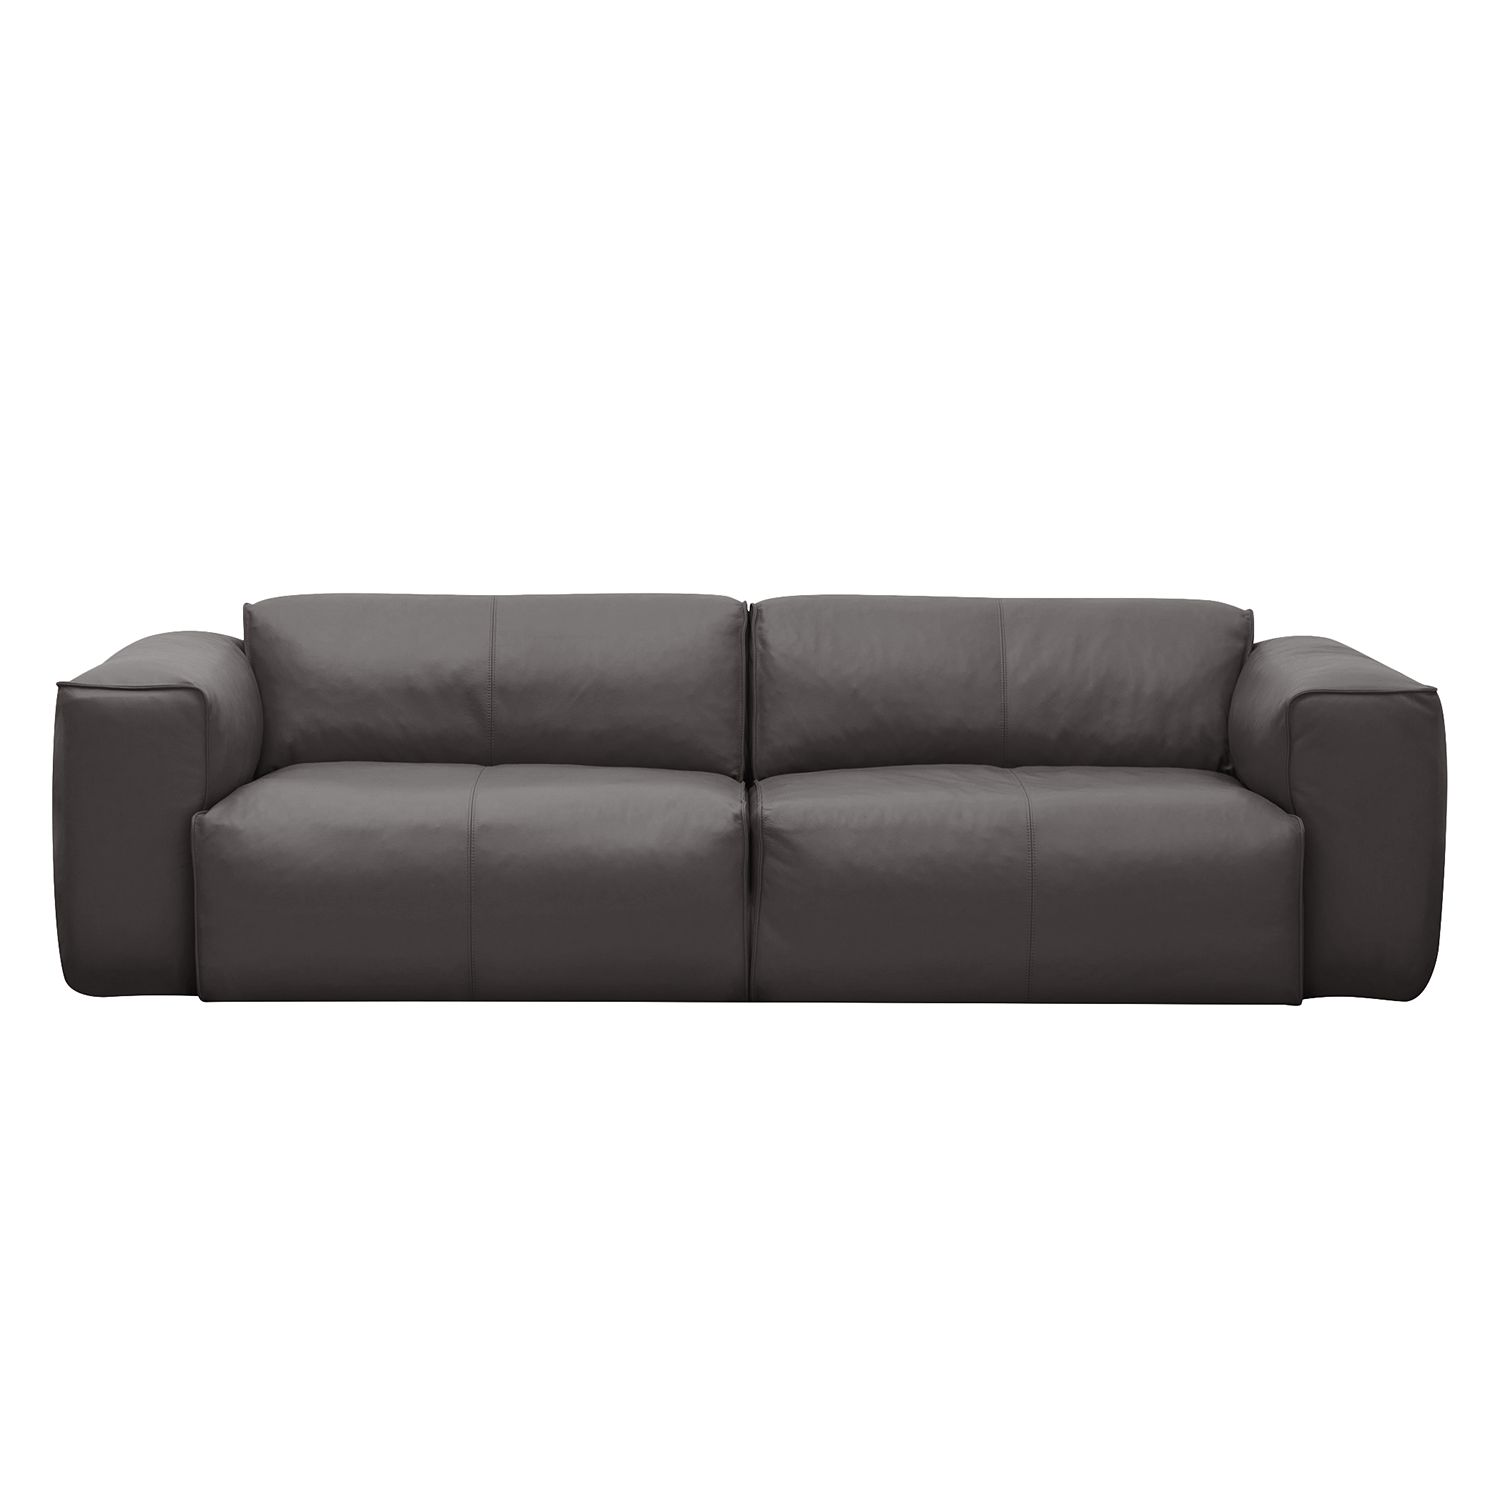 Sofa Hudson II (3-Sitzer) Echtleder - Fashion For Home